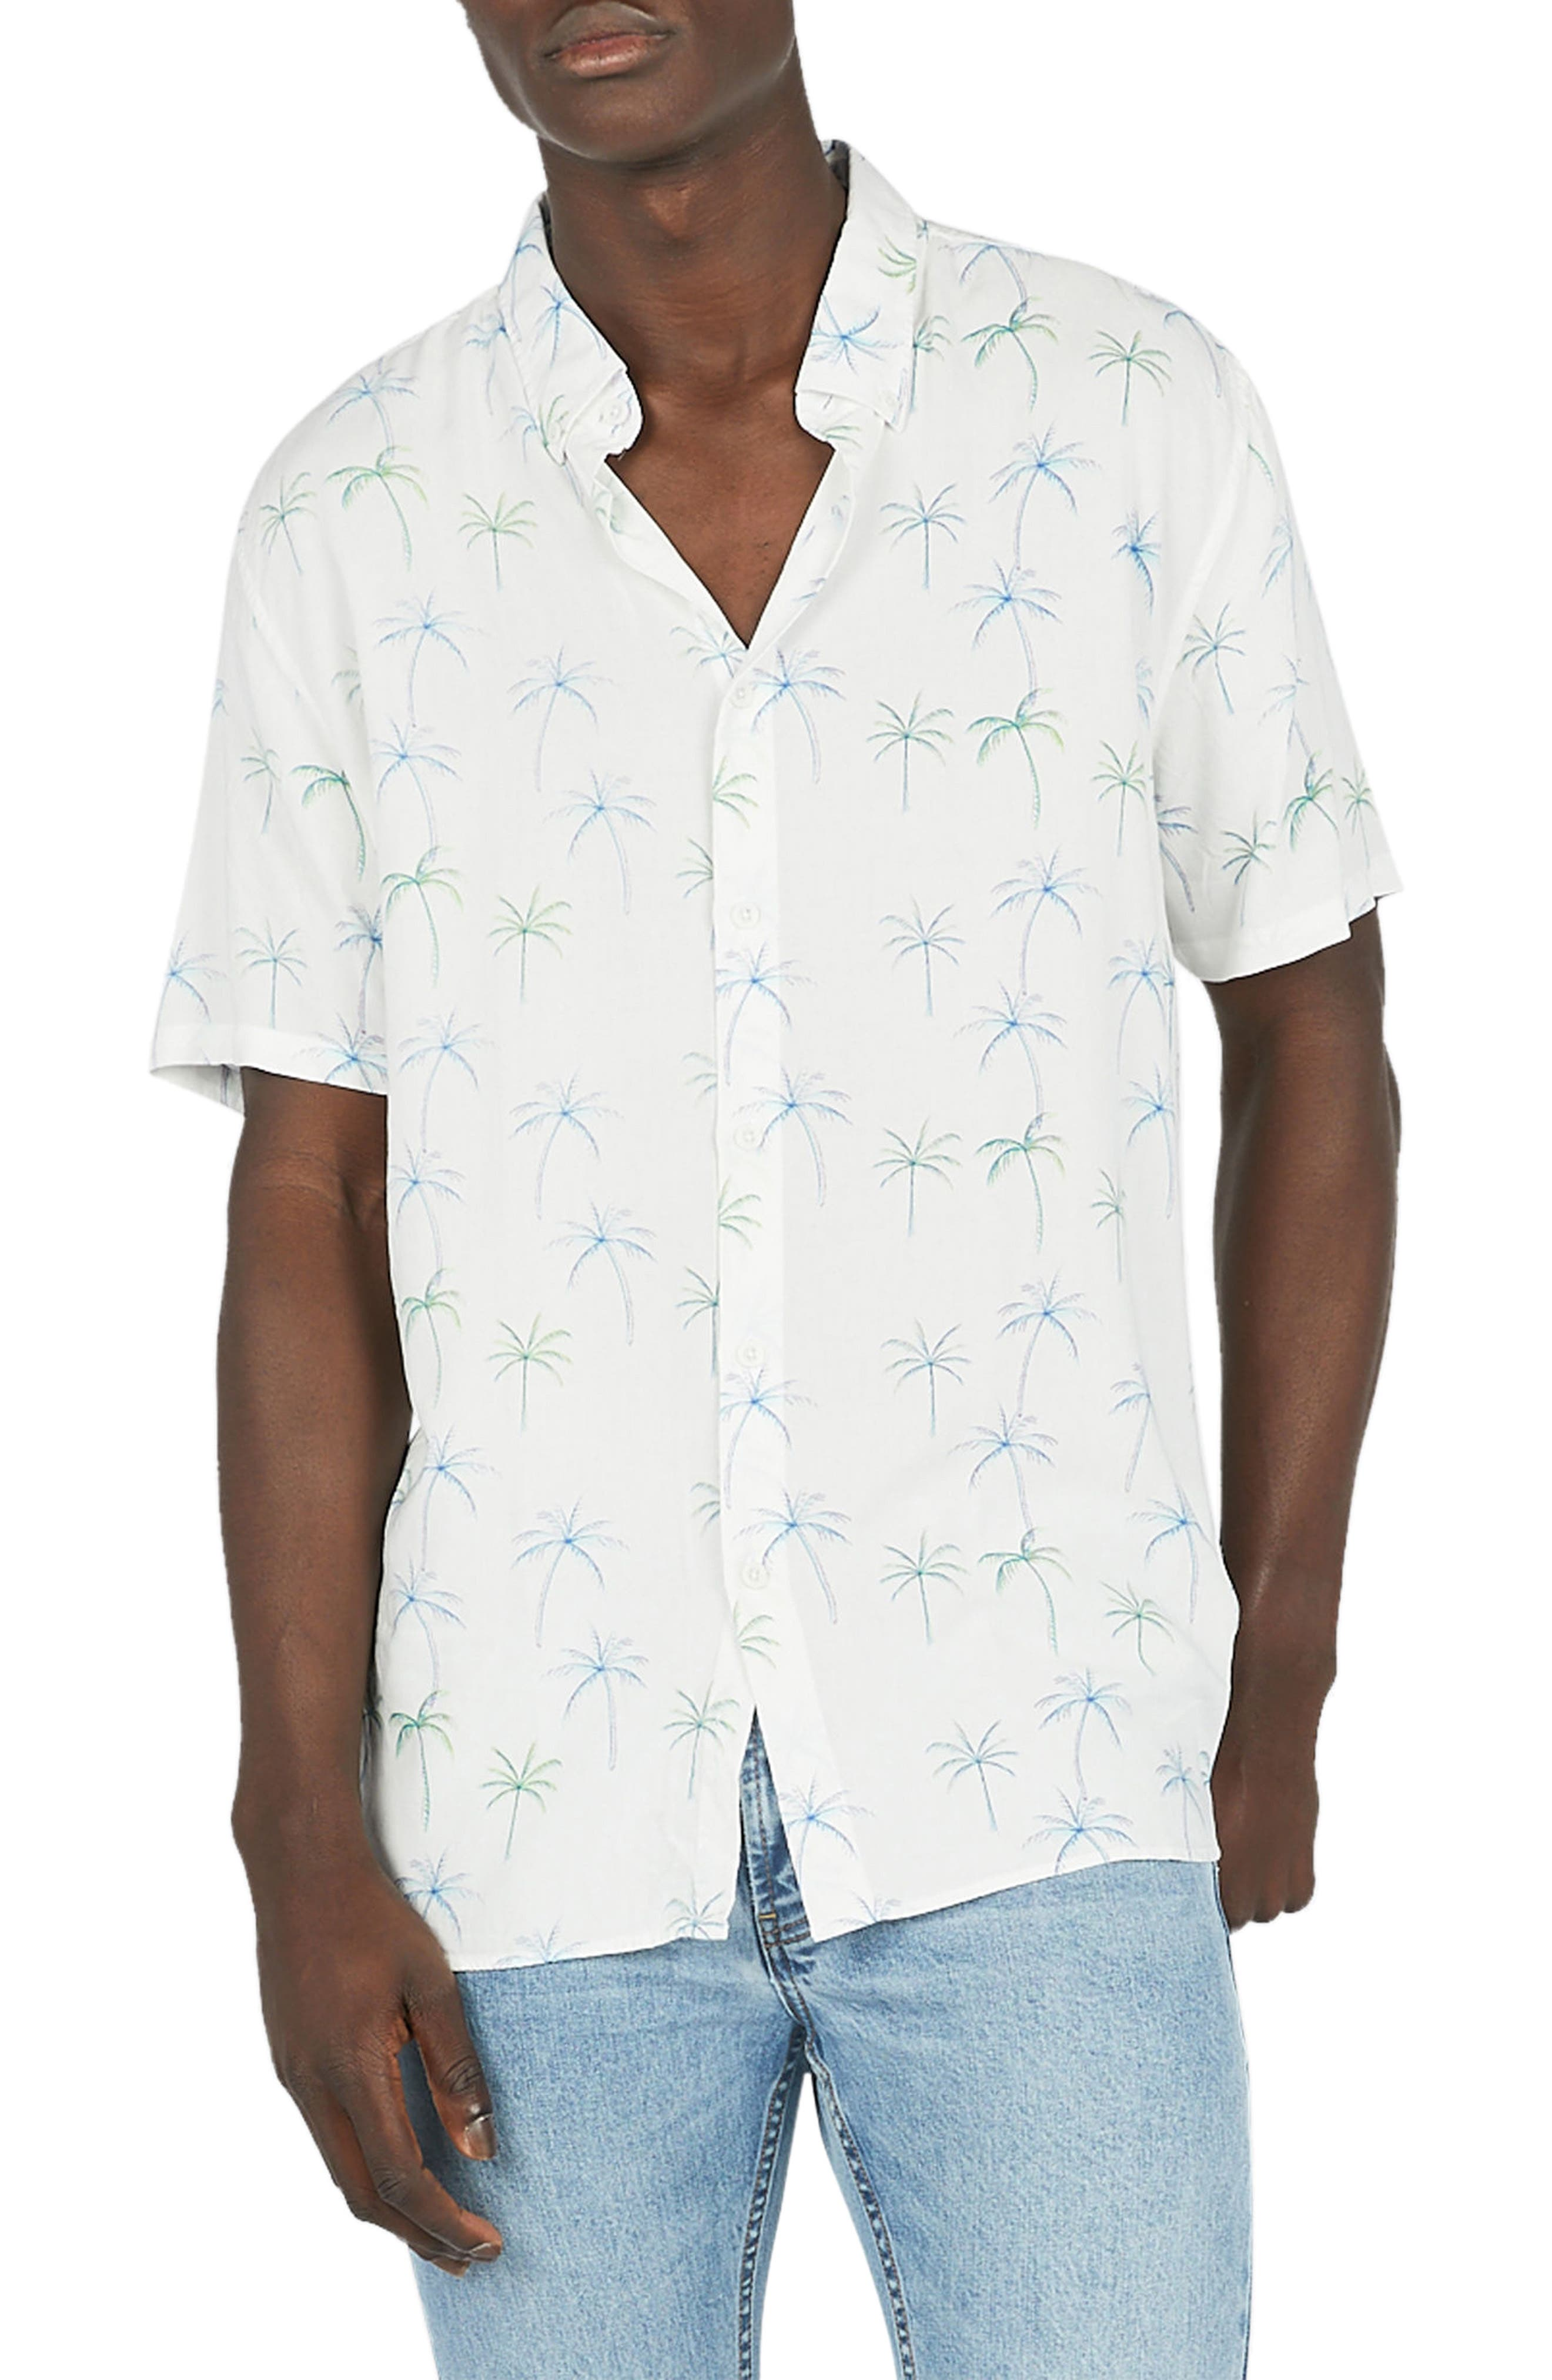 Holiday Woven Shirt,                         Main,                         color, White Palm